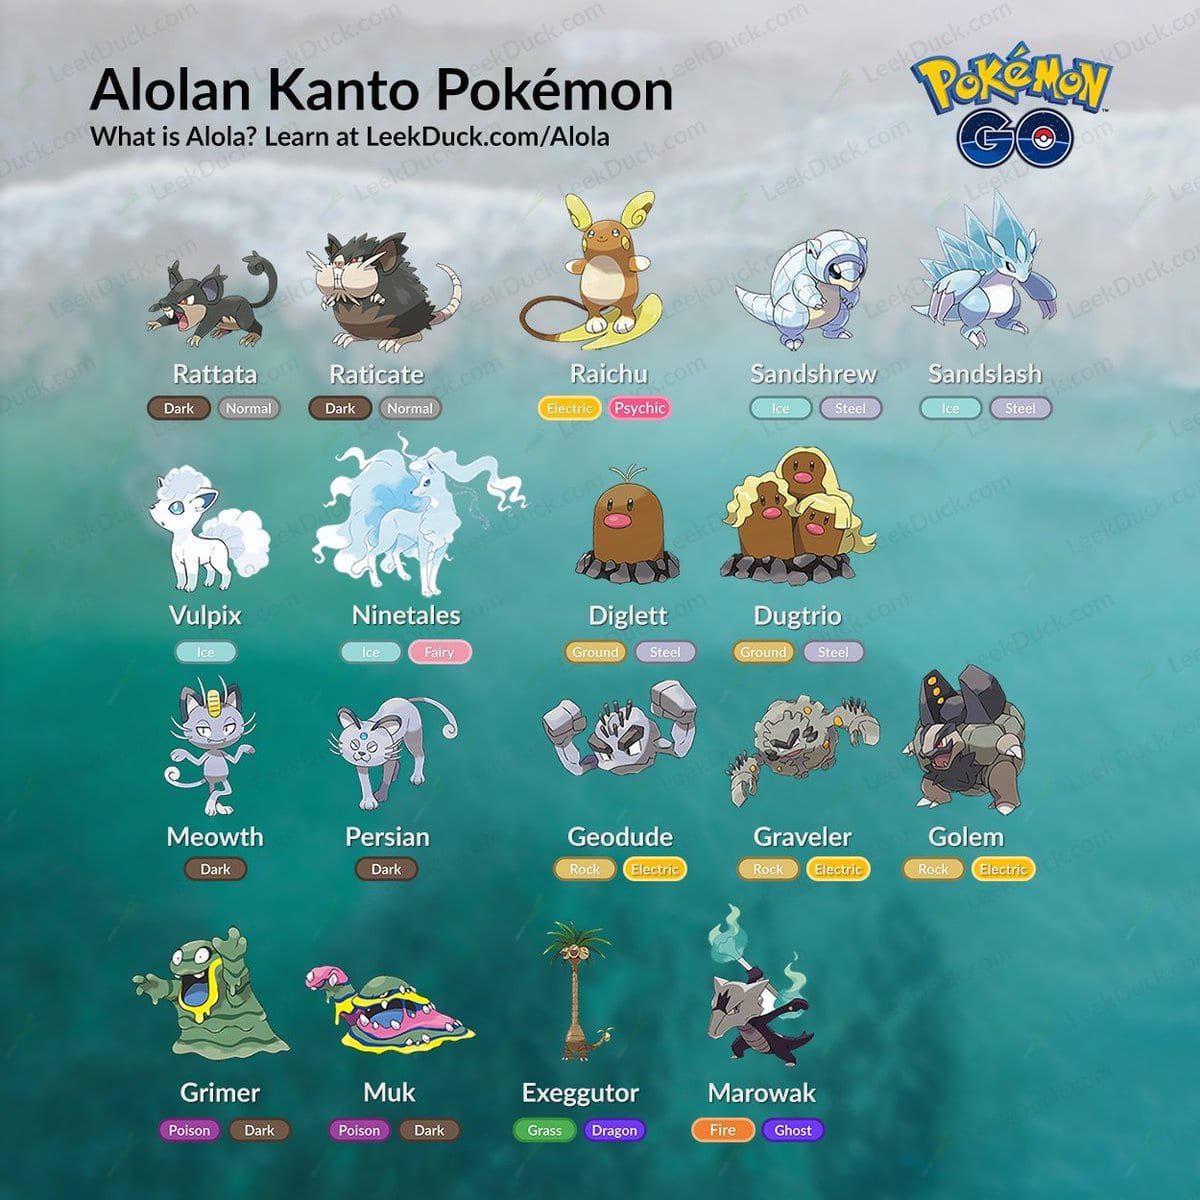 Pokemon go alolan